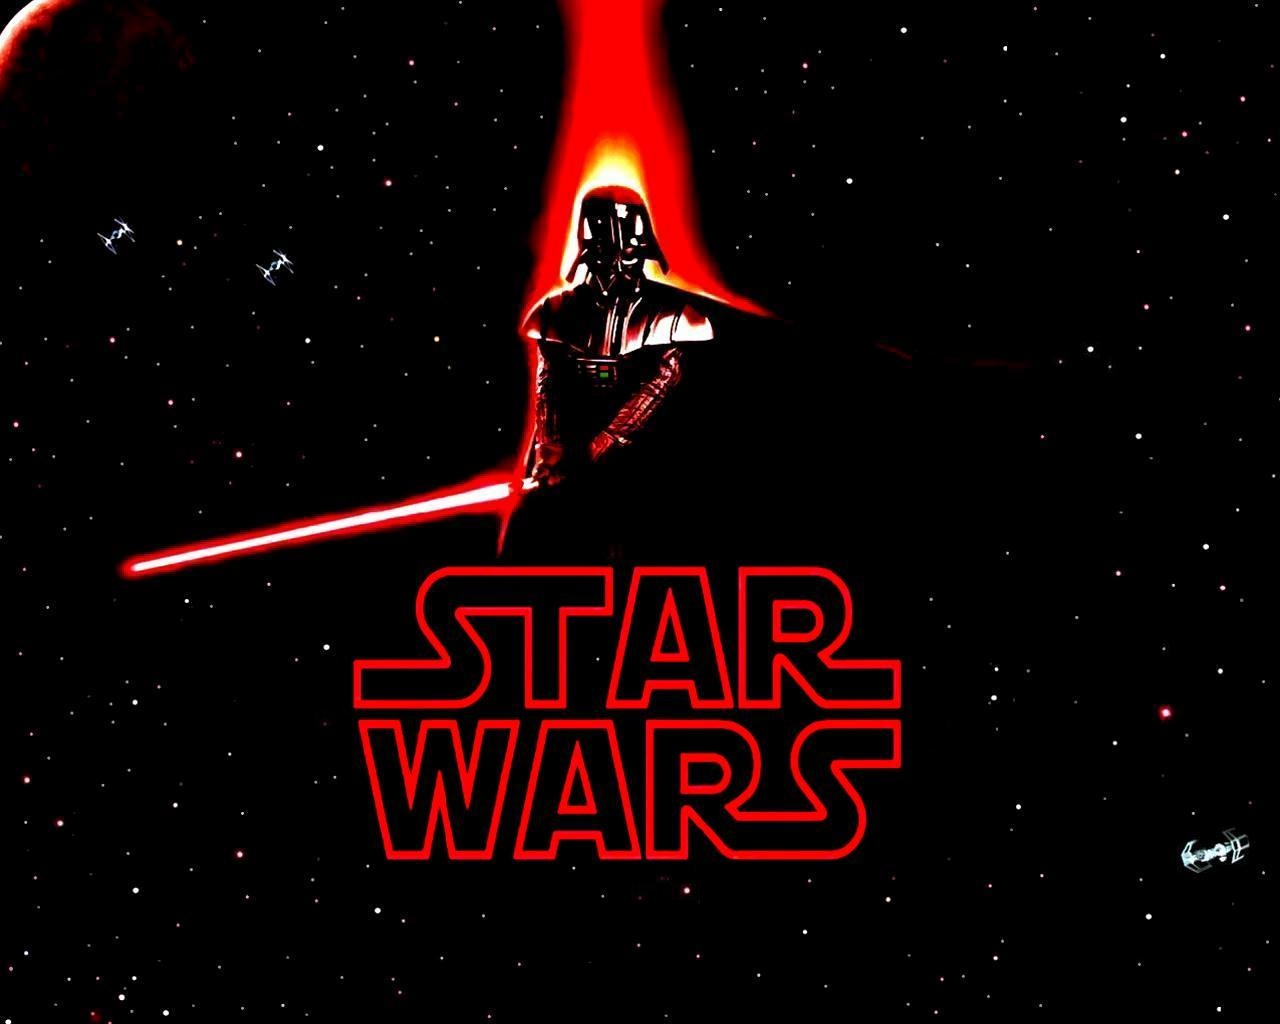 High Resolution Star Wars Wallpapers 051